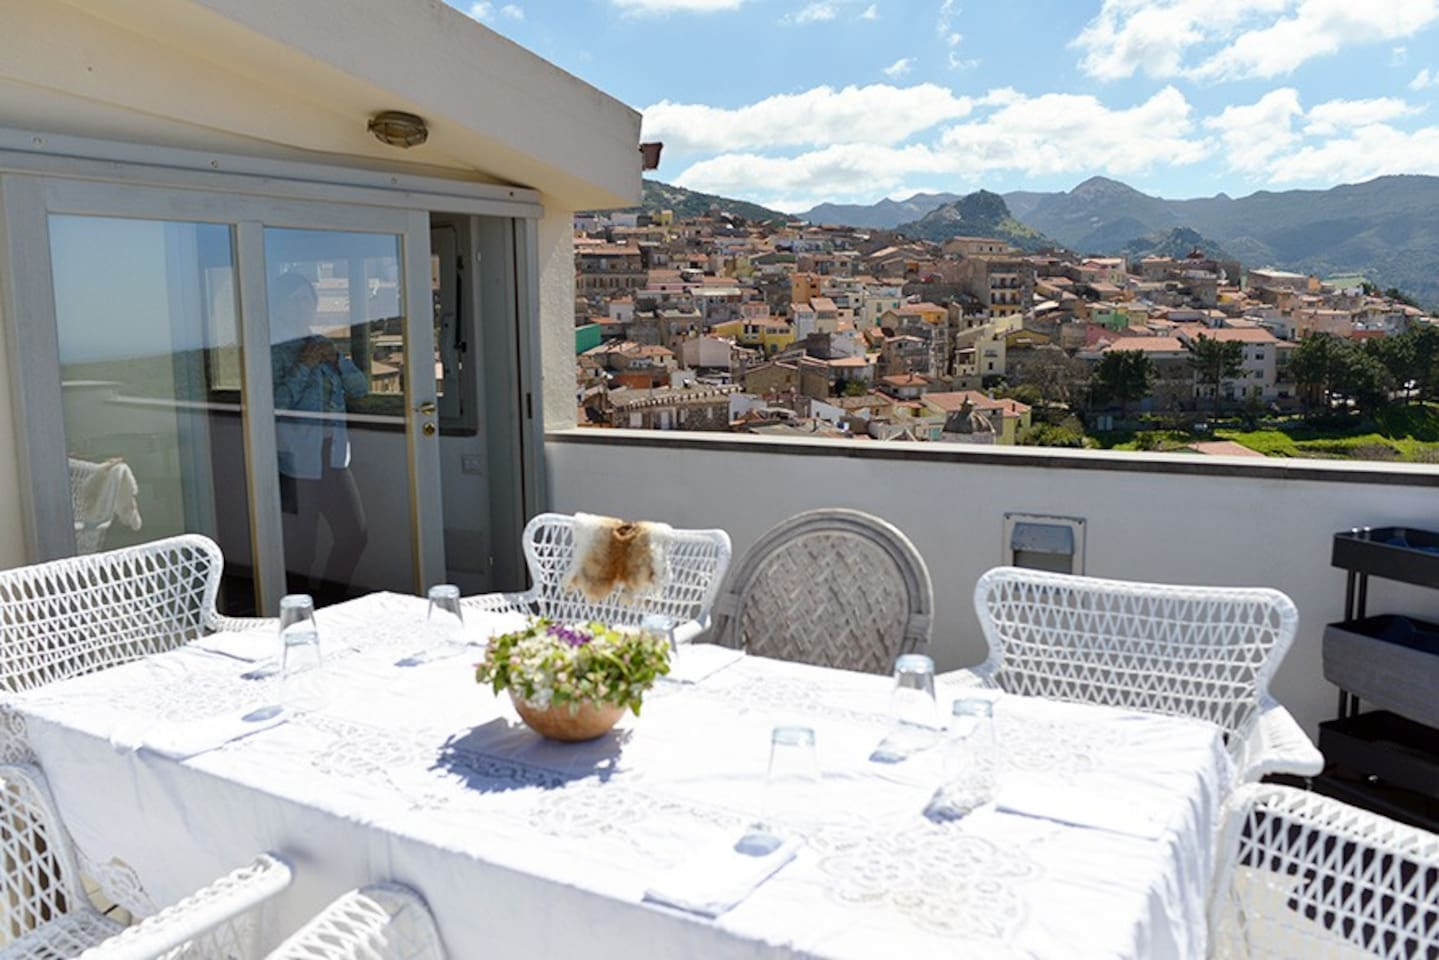 Roof terrace with a panoramic view